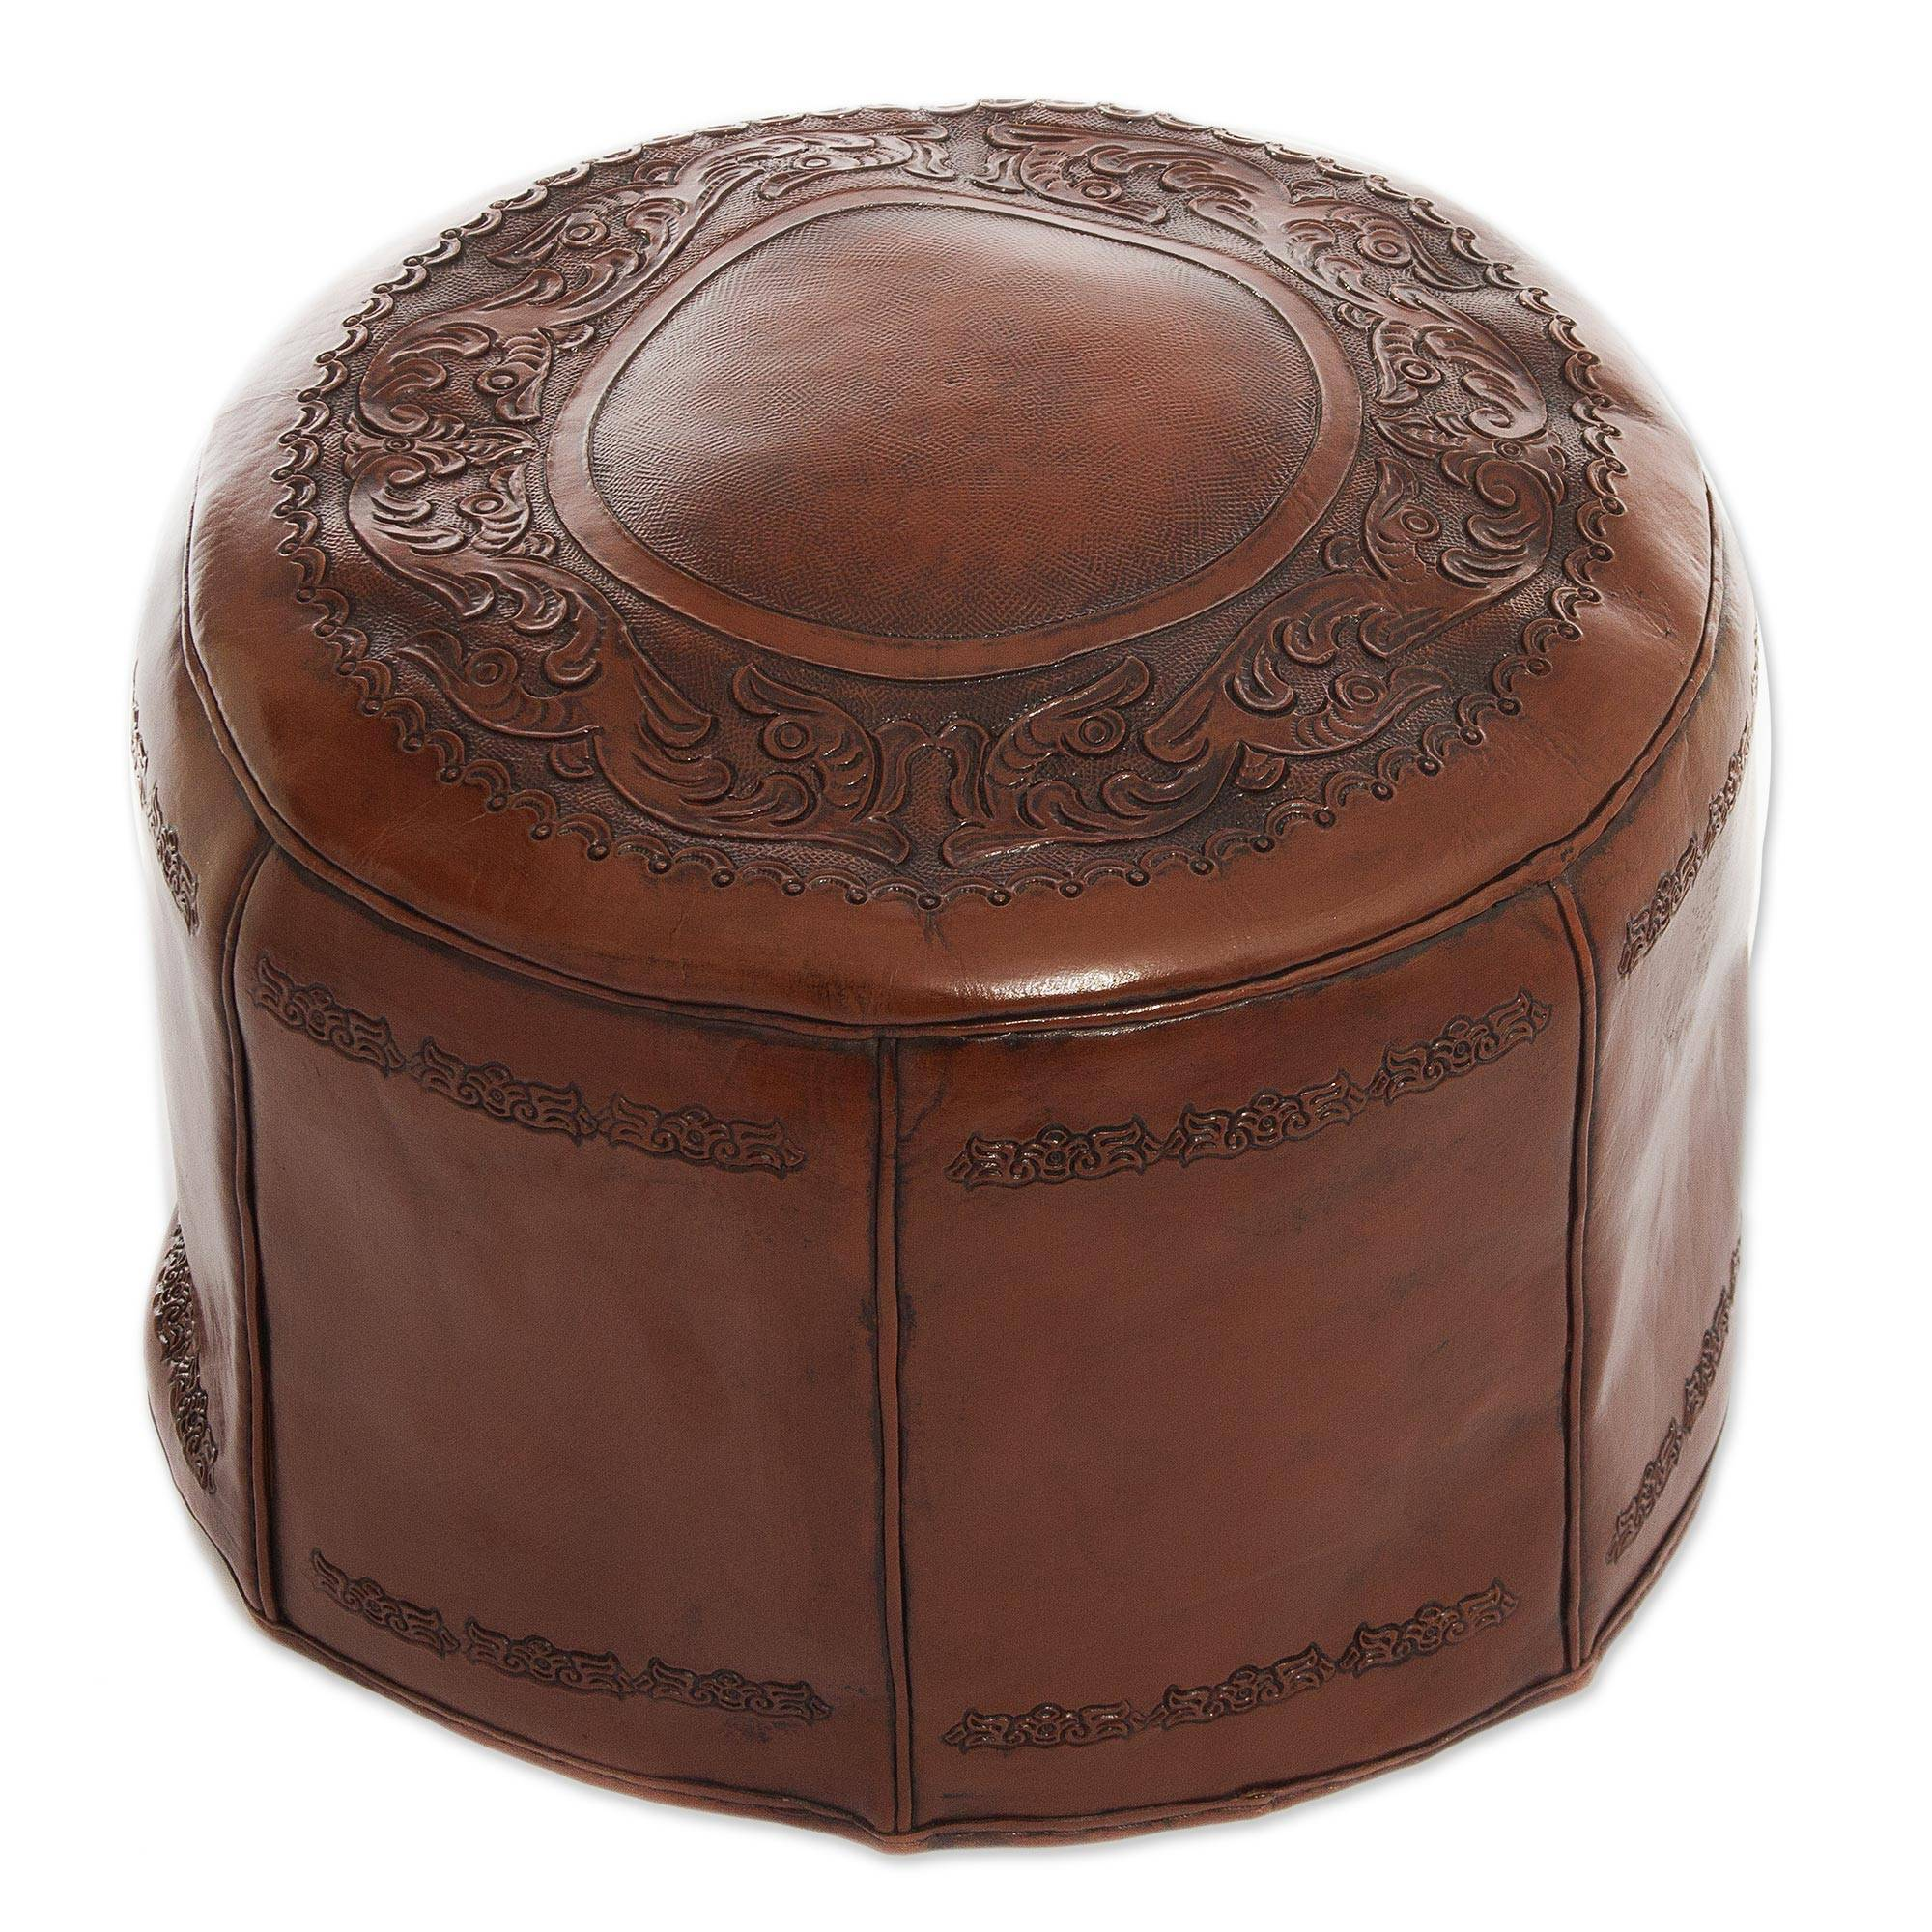 2a073c11eed UNICEF Market   Colonial Leather Pouf Ottoman Cover - Spanish Elegance